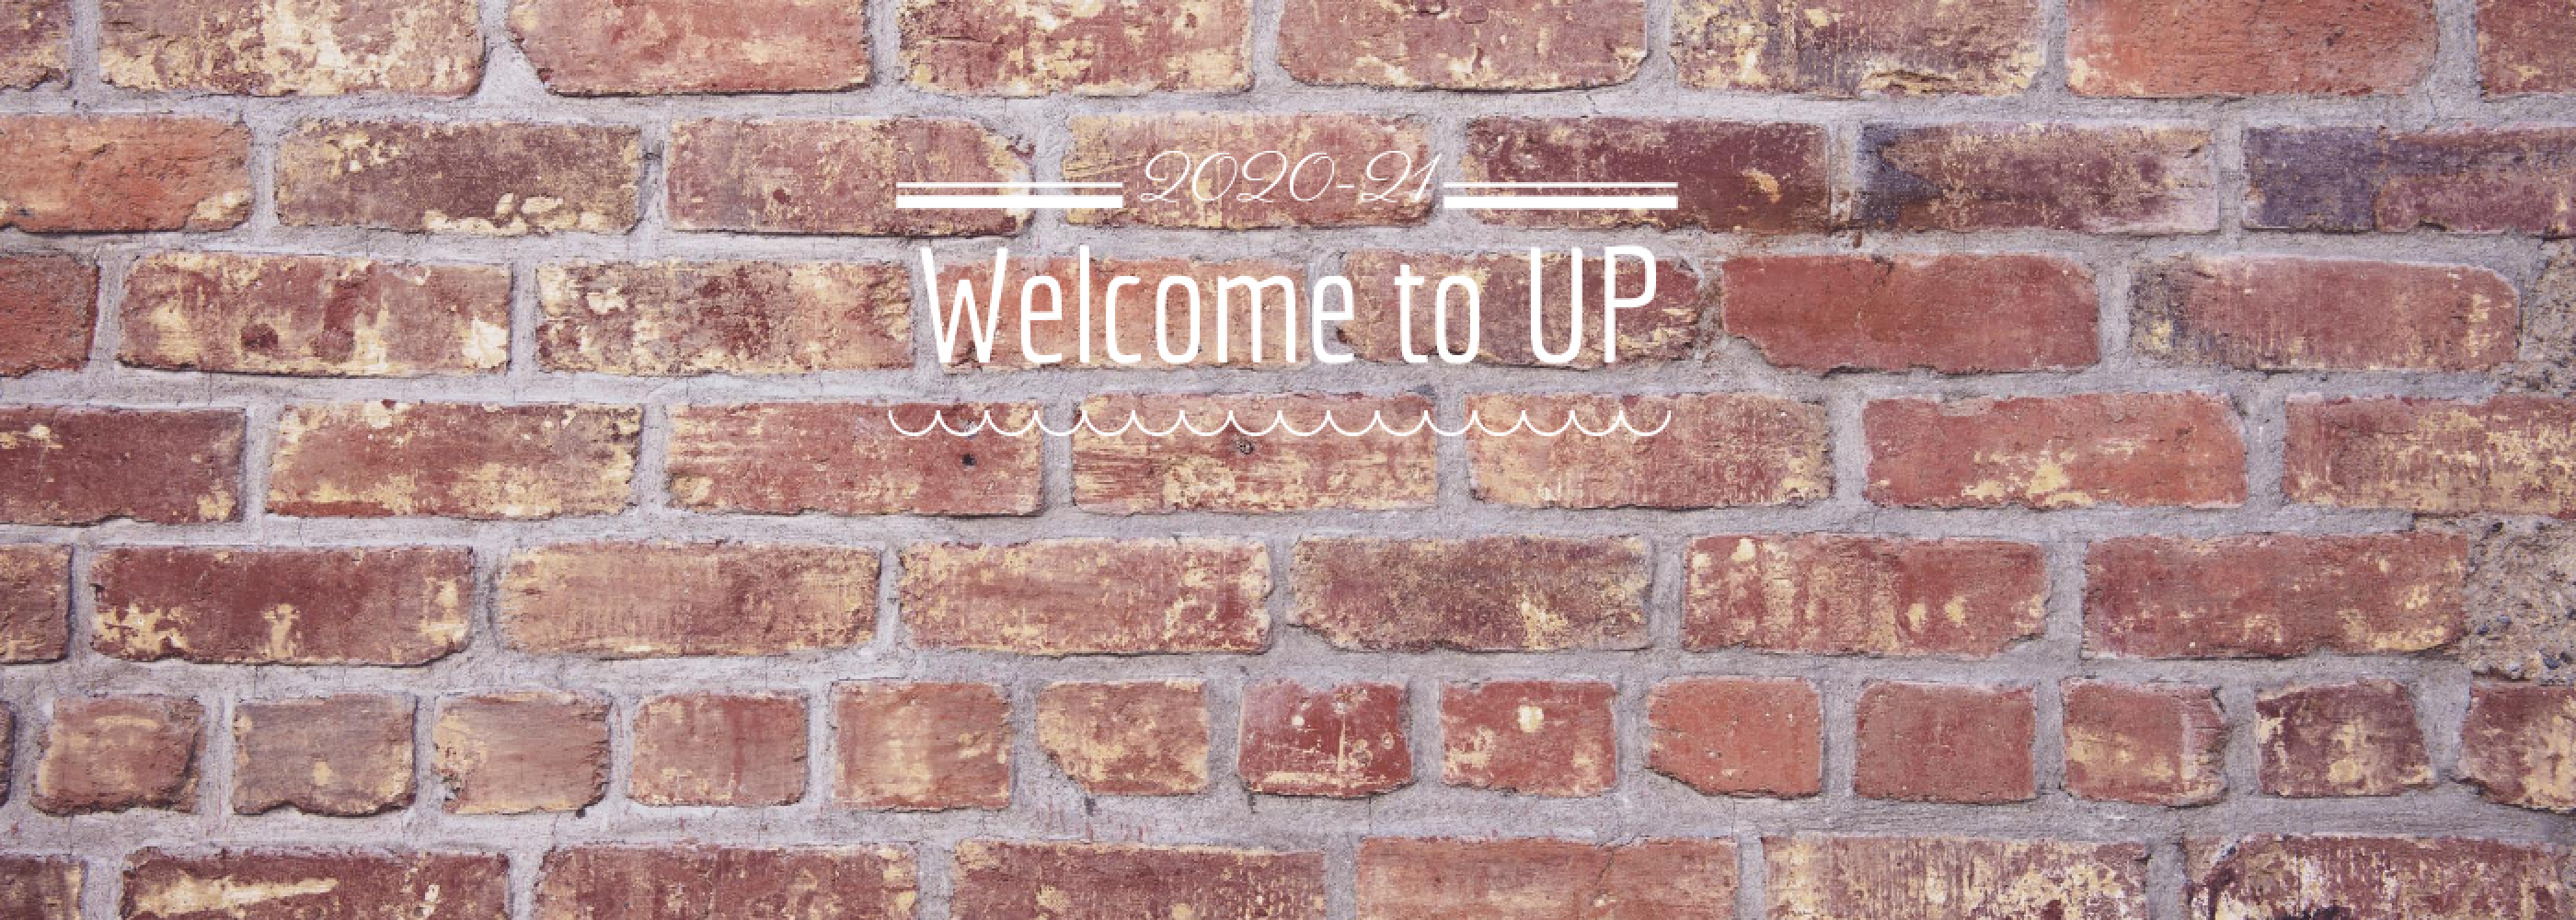 Welome to UP